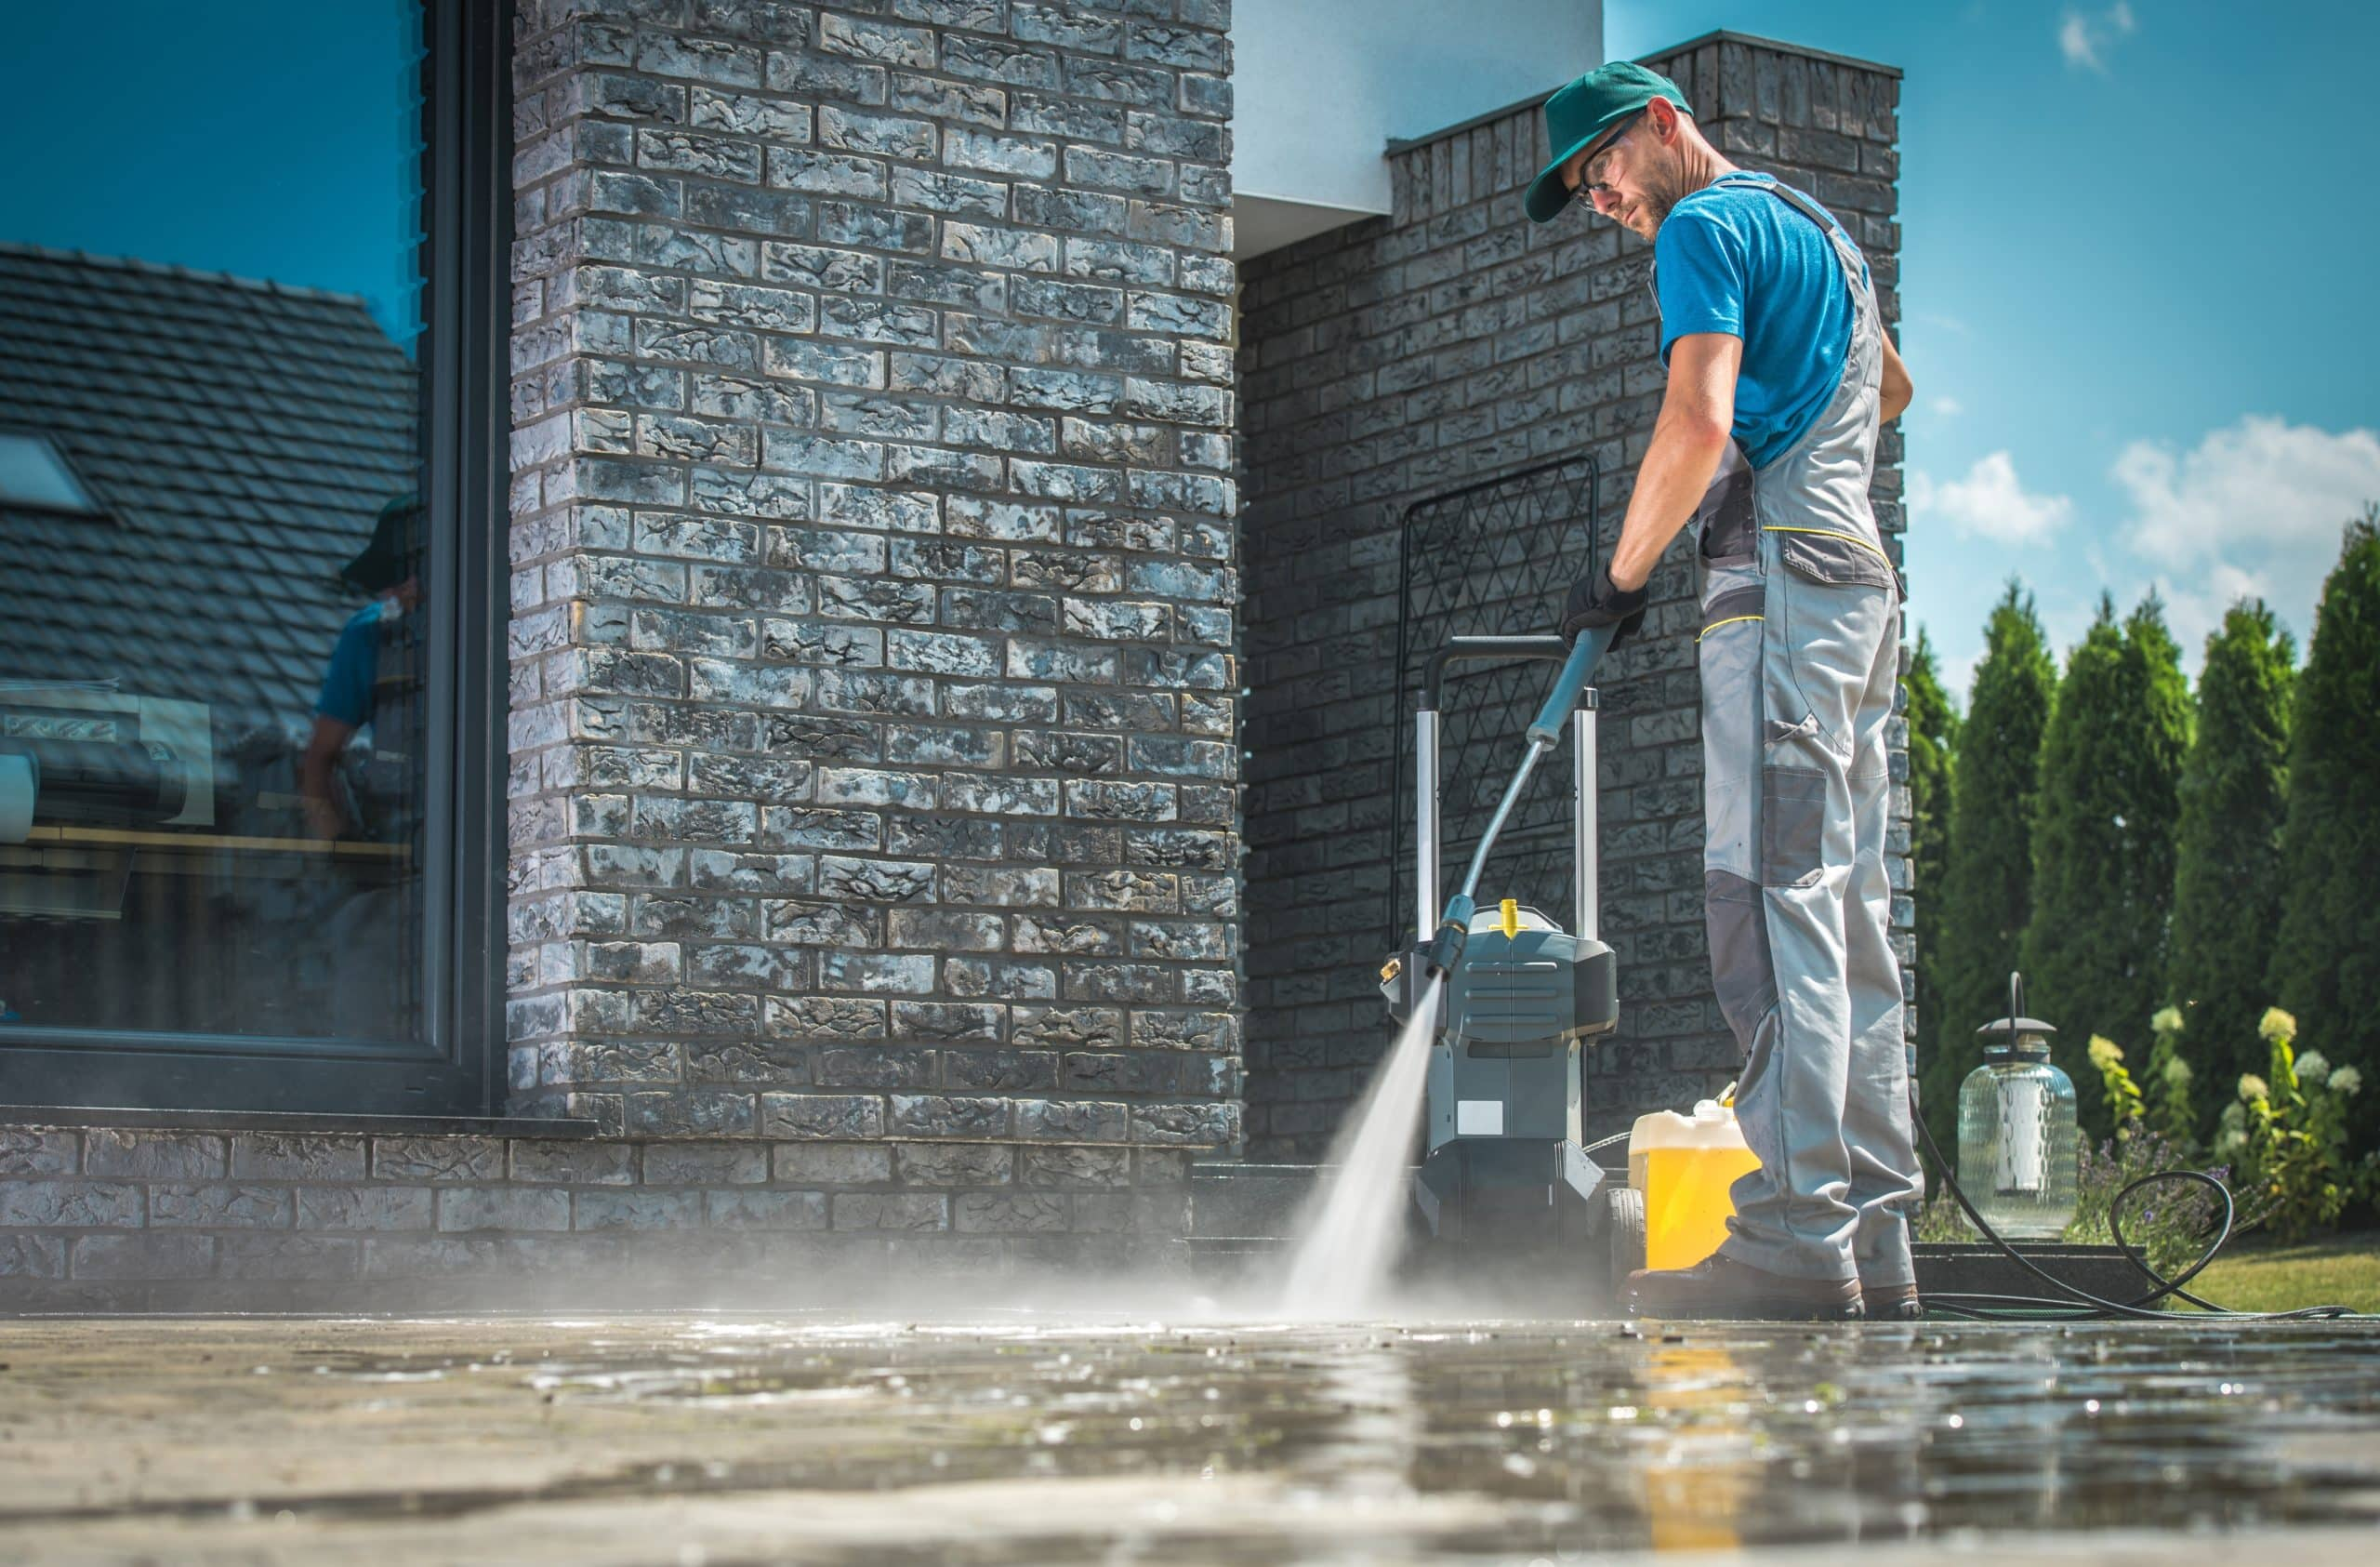 Driveway Cleaning & Concrete cleaning Raleigh NC & Garner NC